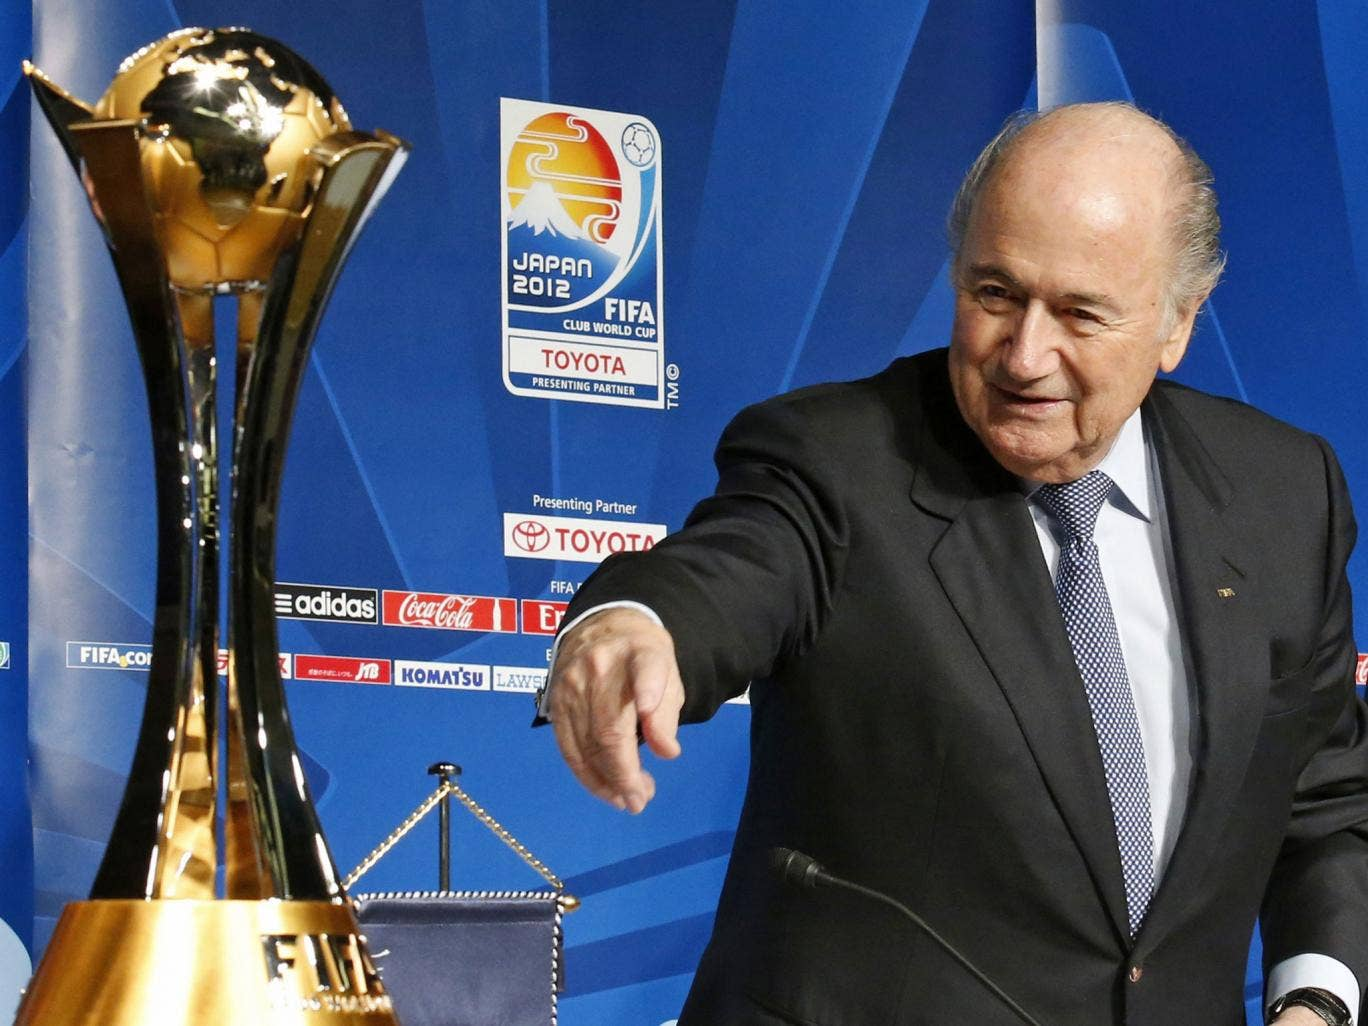 Sepp Blatter has called on his Uefa counterpart, Michel Platini, to consider imposing tougher sanctions on the Serbian FA for racist chanting and violence